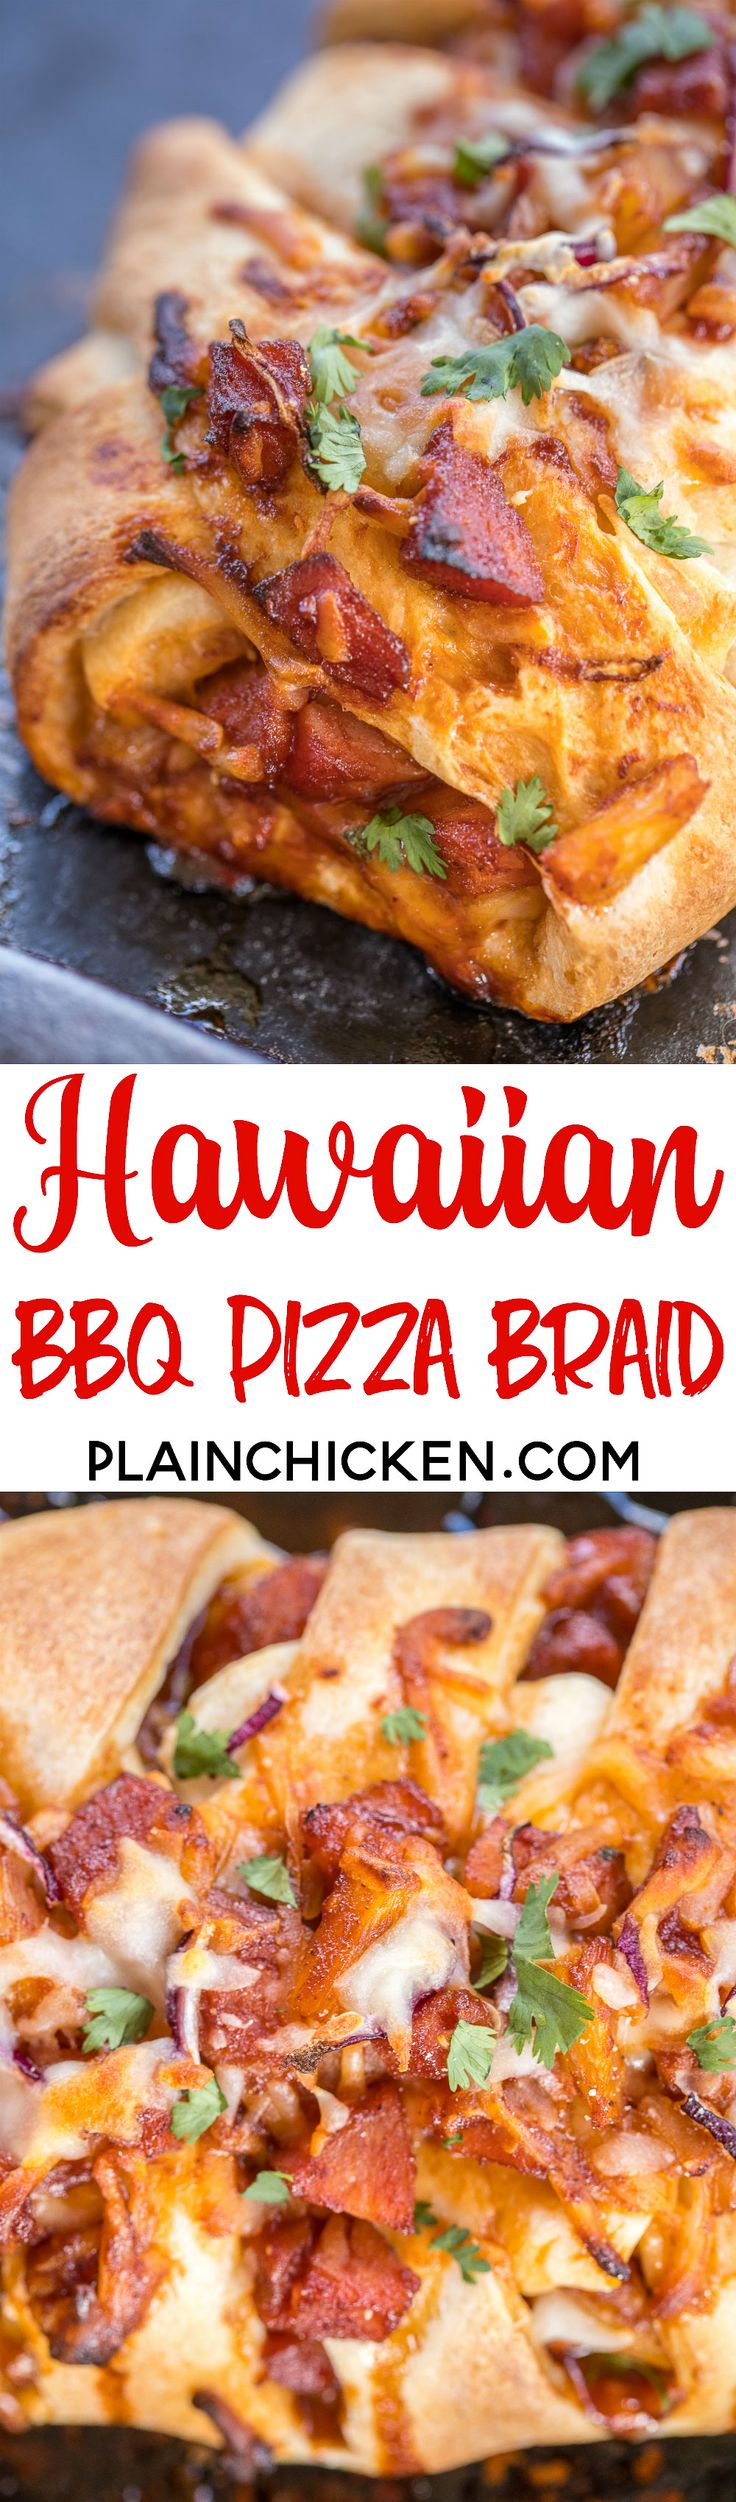 Hawaiian BBQ Pizza Braid - ready in under 30 minutes! Ham, pineapple, BBQ sauce, mozzarella, cilantro and red onions baked in refrigerated pizza dough. Fun twist to pizza night!!! Everyone LOVES this easy stuffed bread!! #pizza #hawaiianbbqpizza #bbqpizza